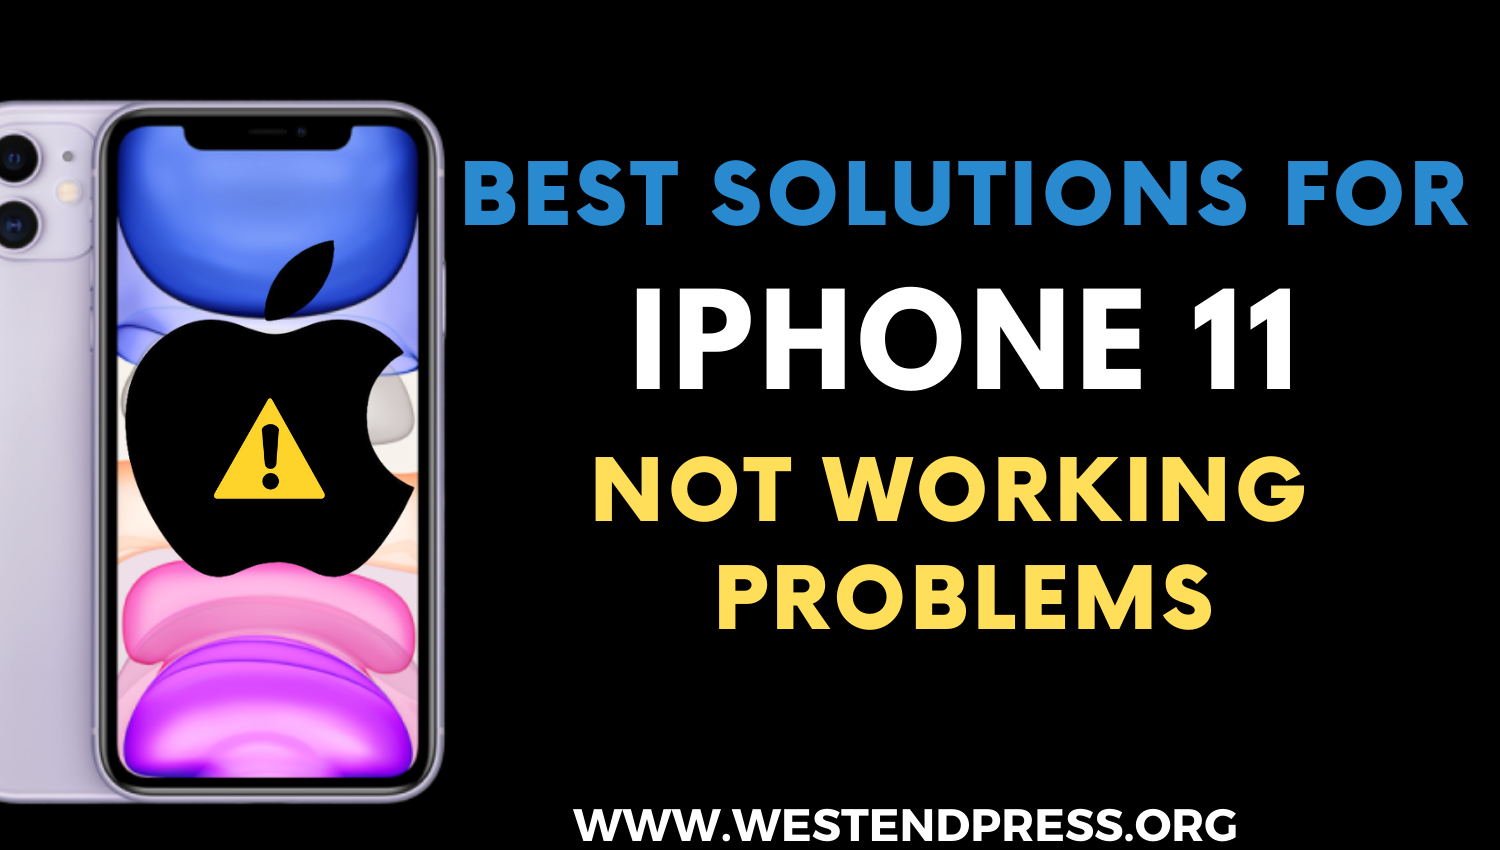 Best solutions for iPhone 11 not working